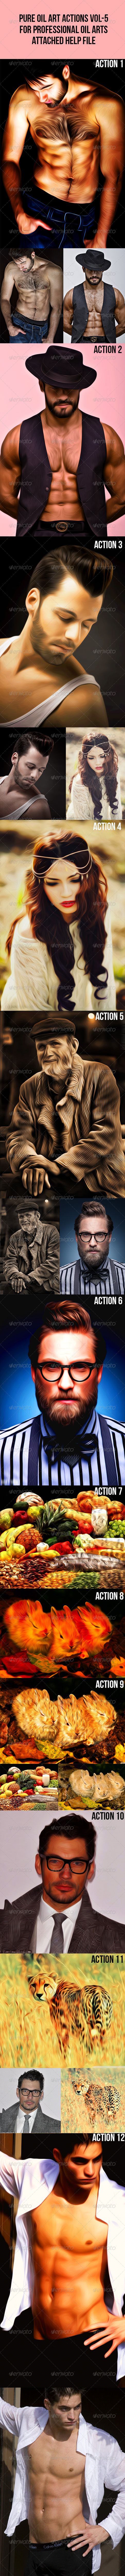 GraphicRiver Pure Oil Art Actions Vol-5 7994611